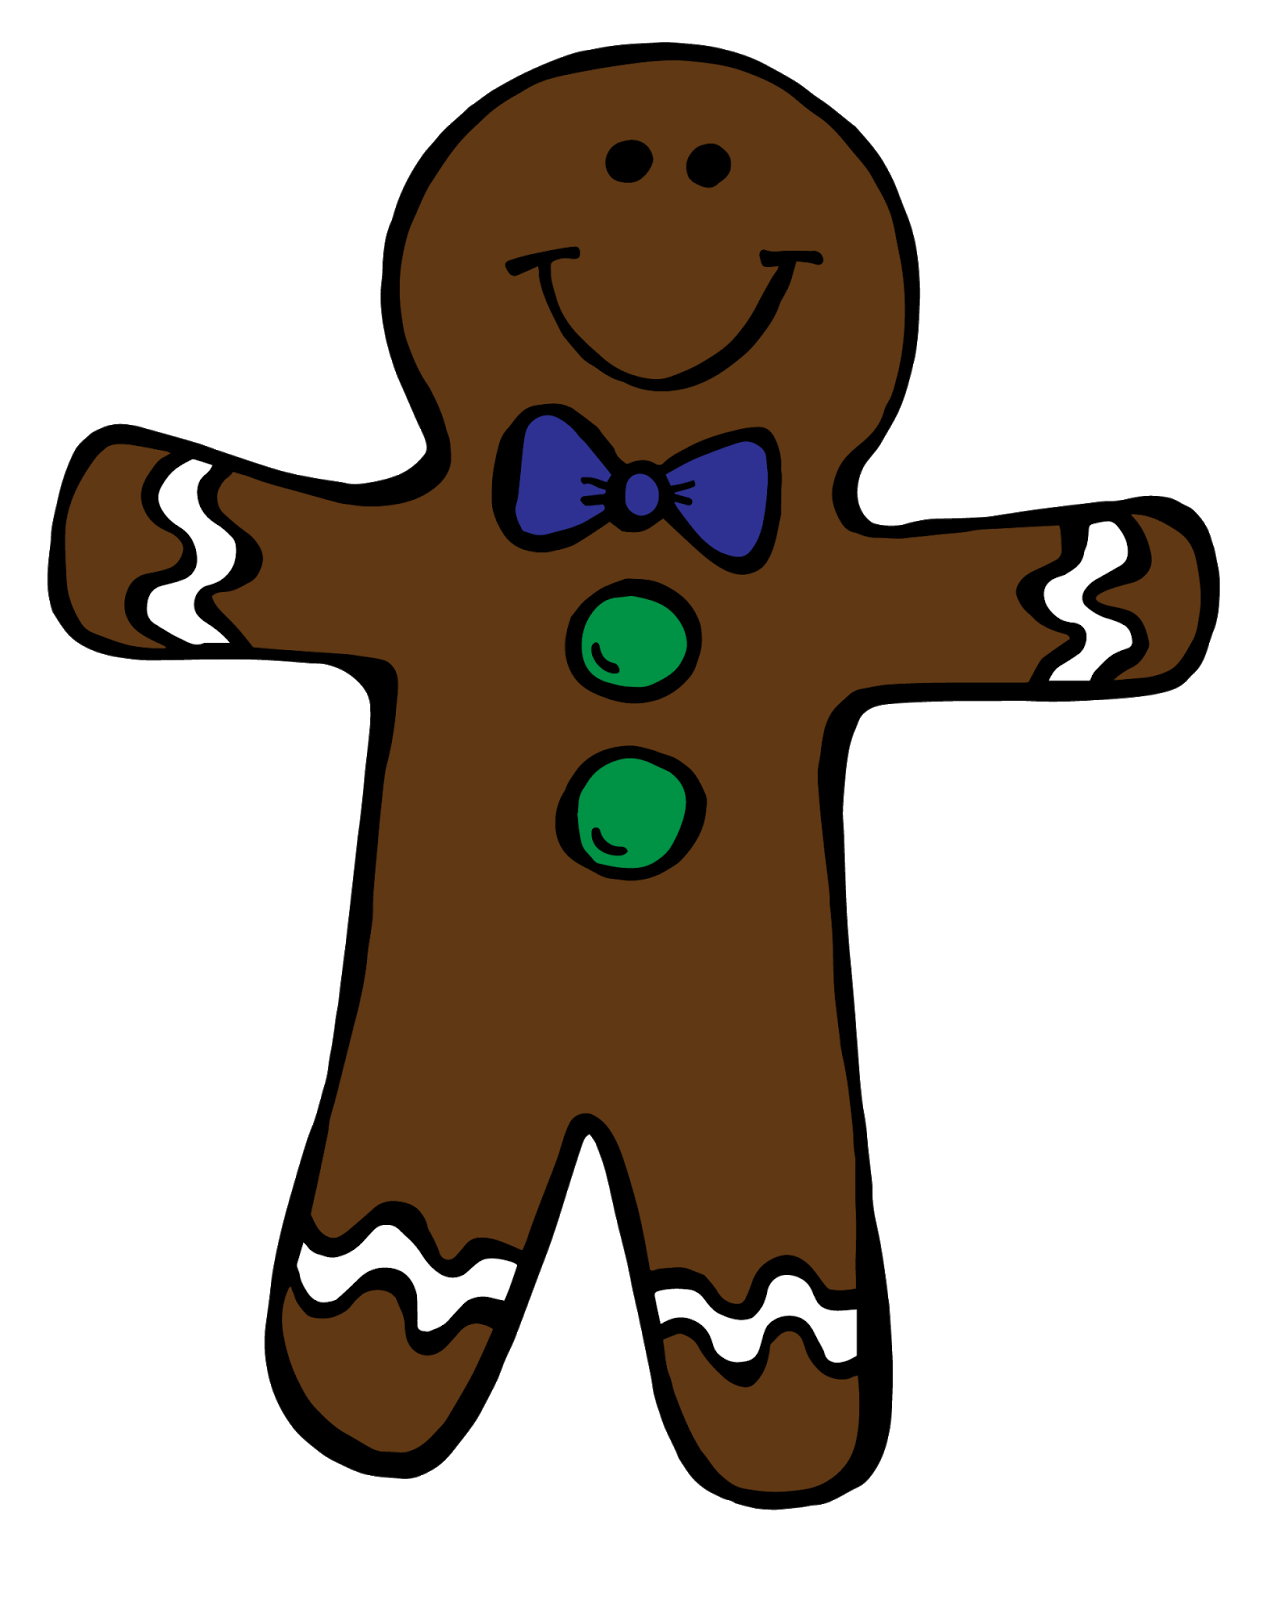 Gingerbread clipart face. The art of teaching